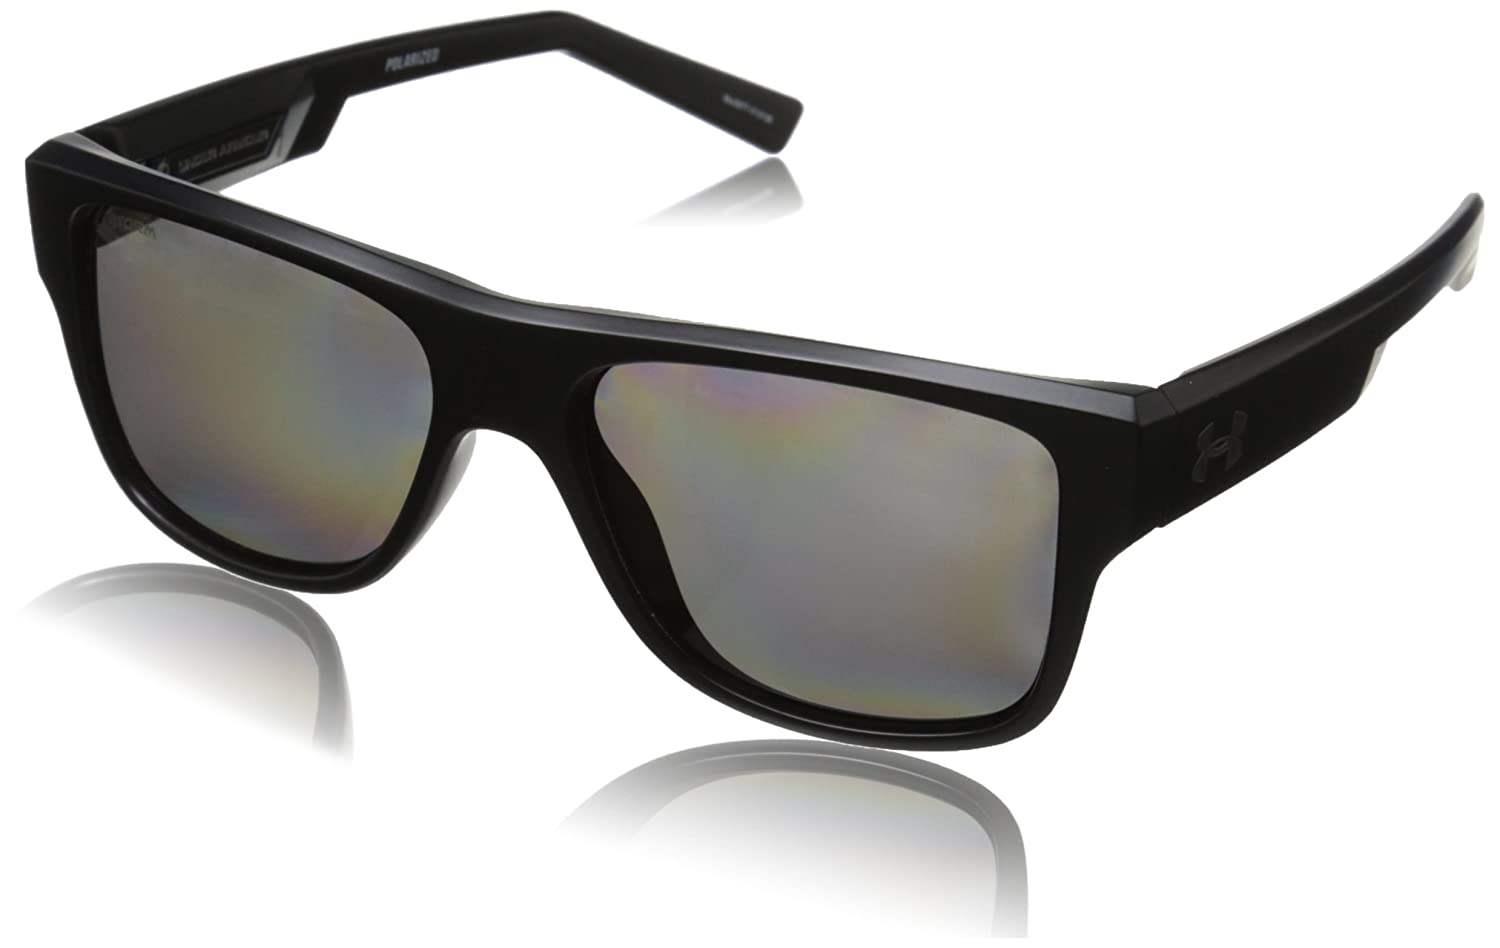 polarized sunglasses cheap jkxz  Under Armour Regime Storm 8640077-010108 Polarized Sunglasses cheap